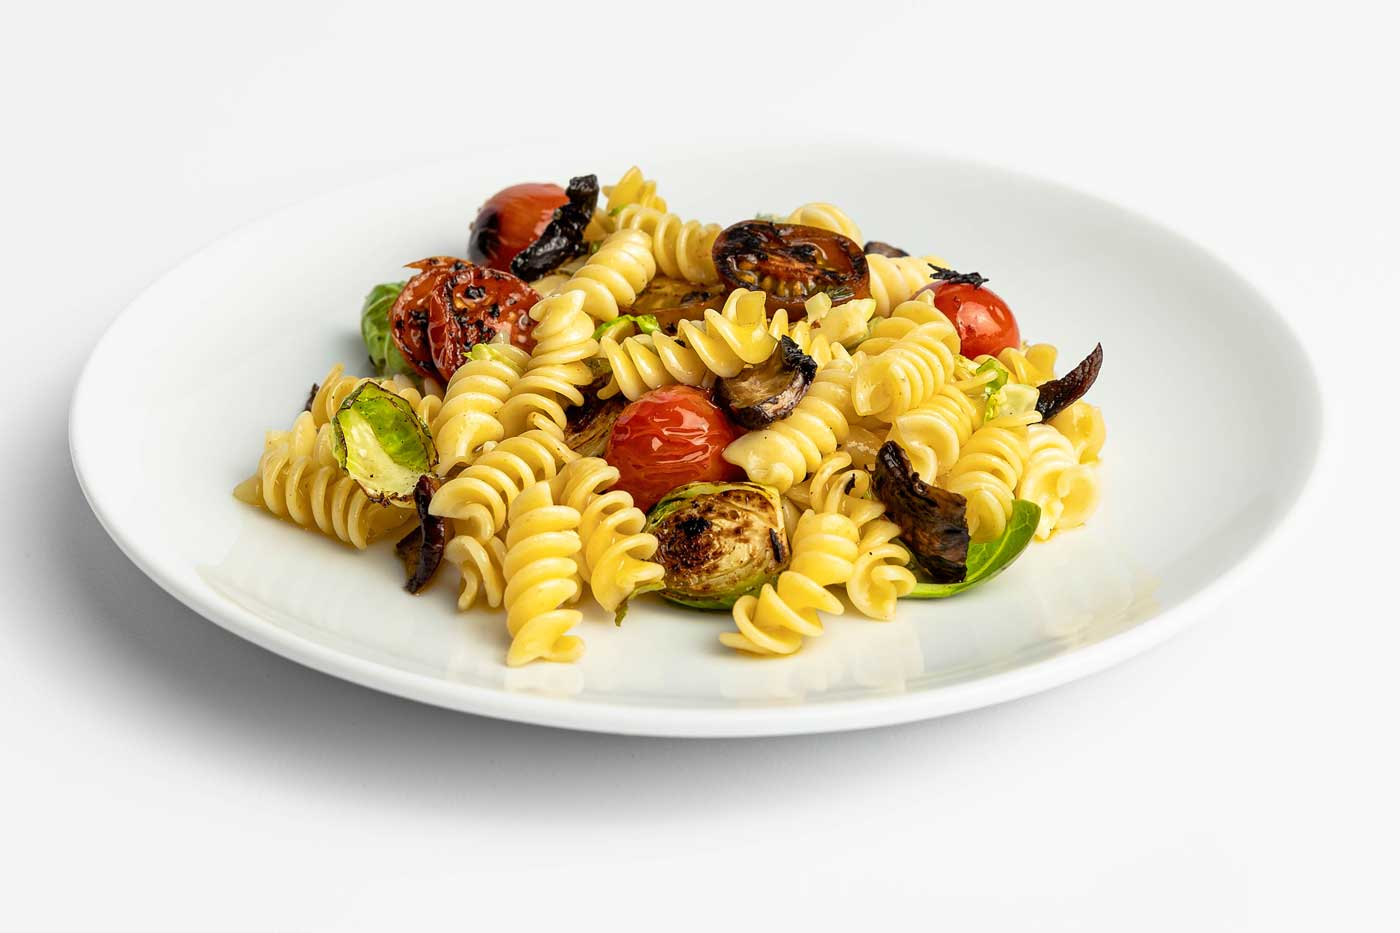 Vegan Meal Delivery Cherry Tomato Pasta